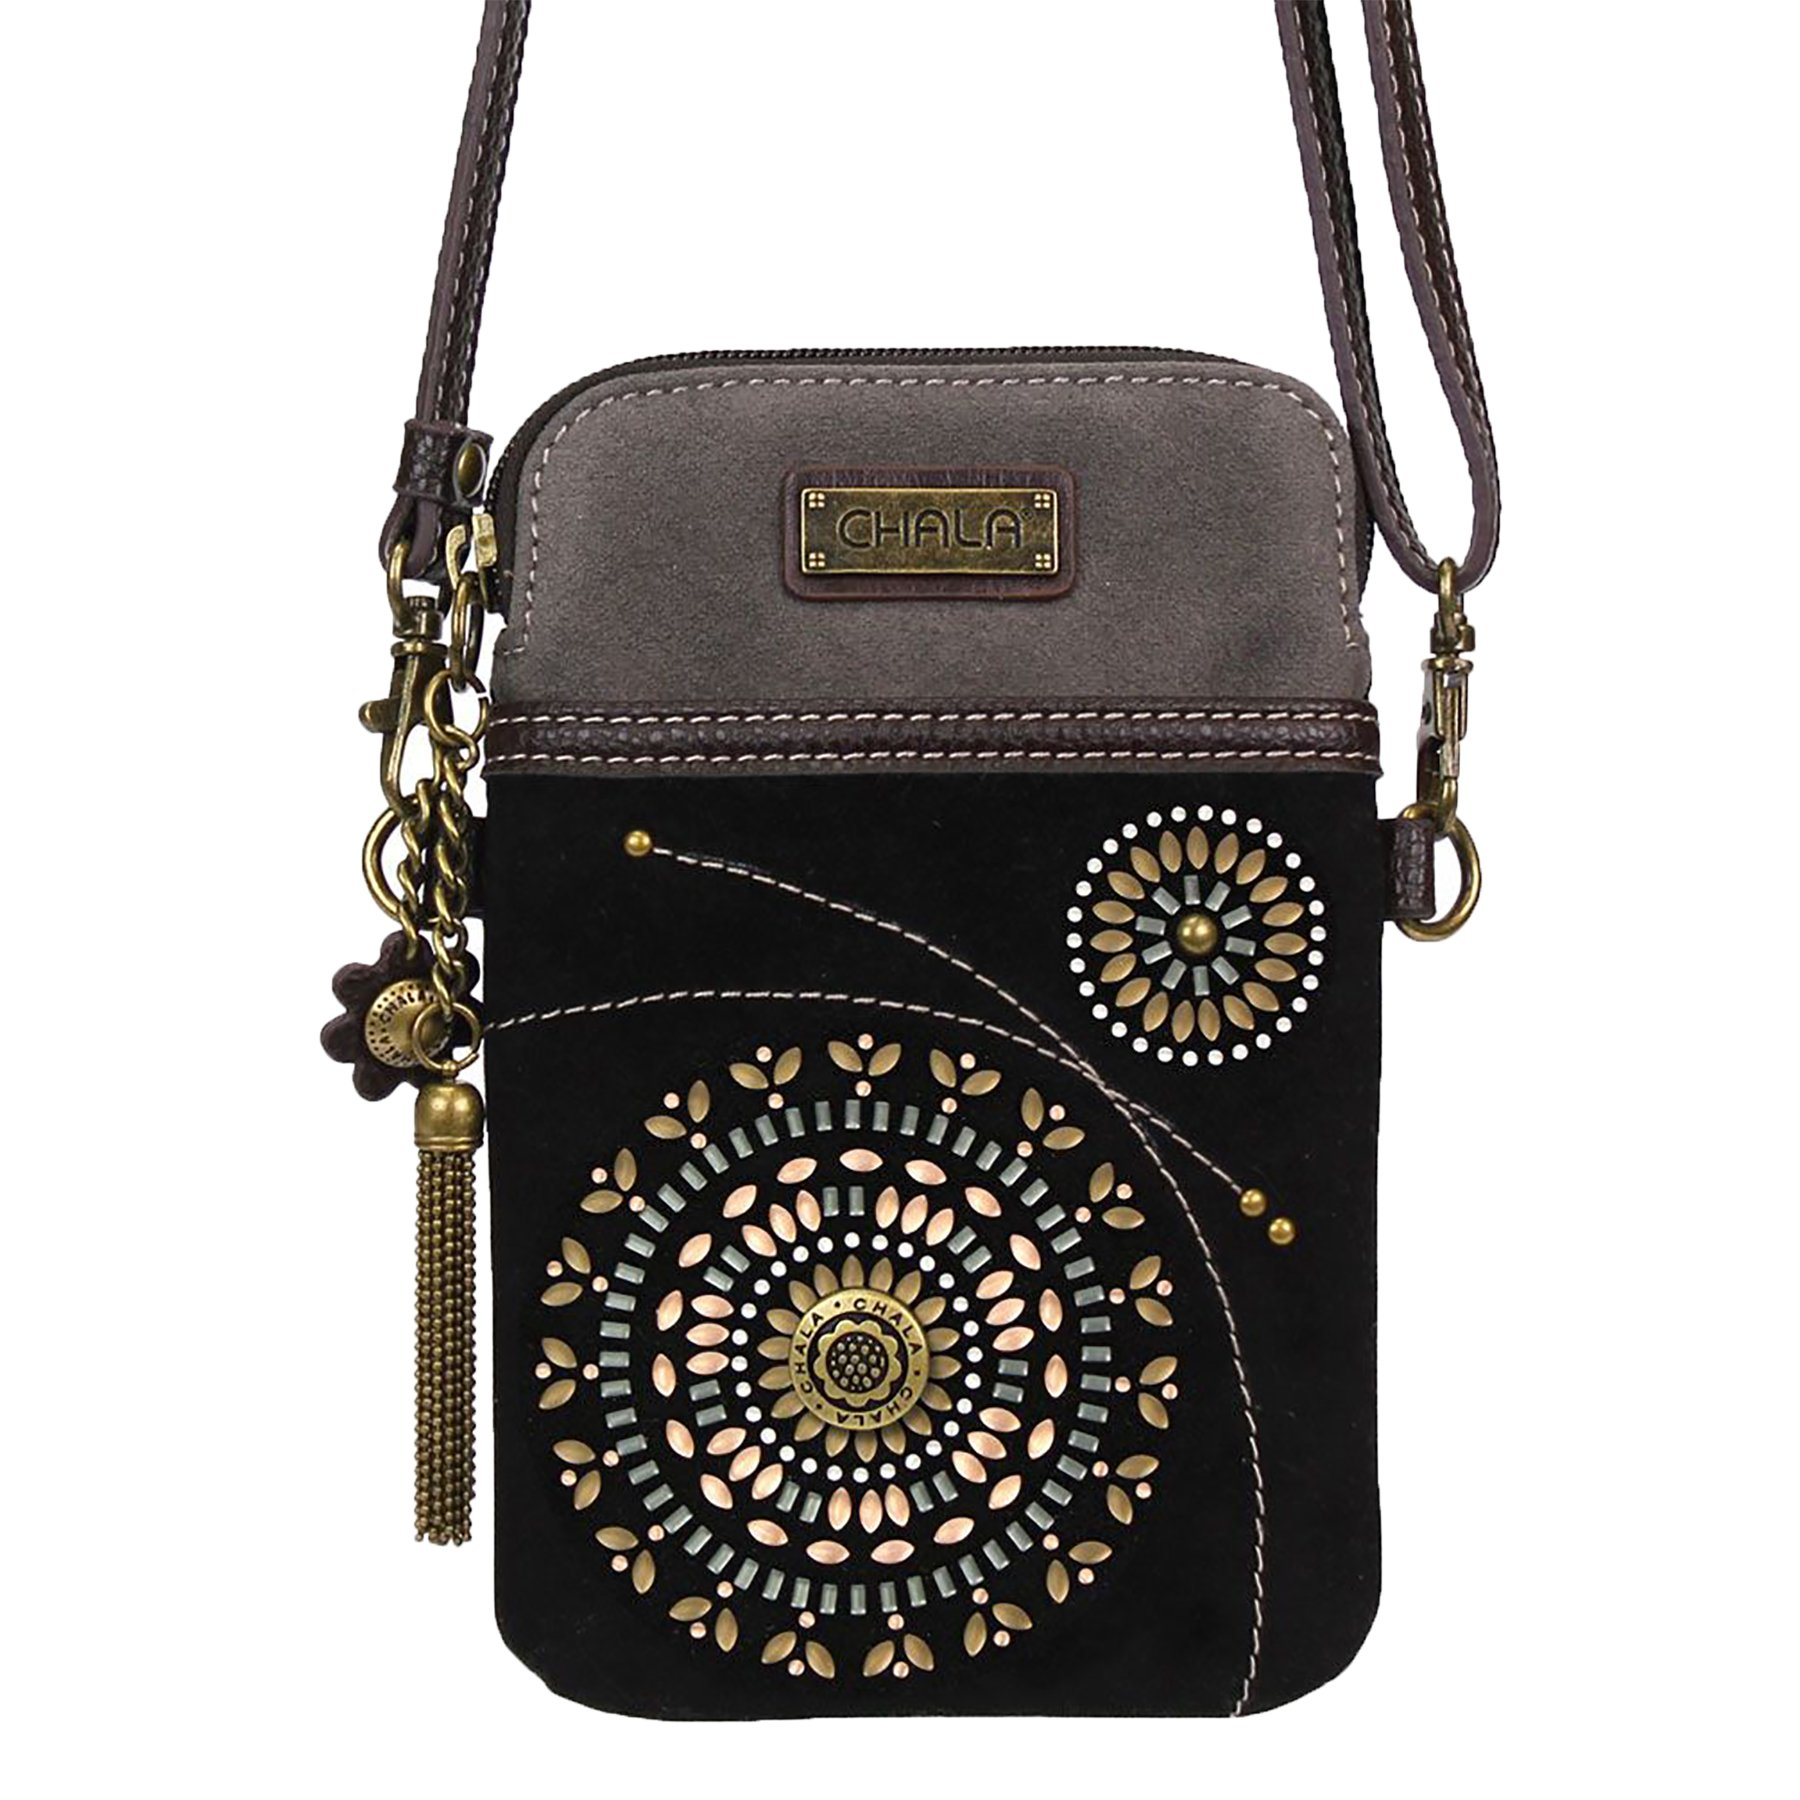 Chala Crossbody Cell Phone Purse - Women Faux Suede Multicolor Handbag with Adjustable Strap - Starburst - Black by CHALA (Image #1)